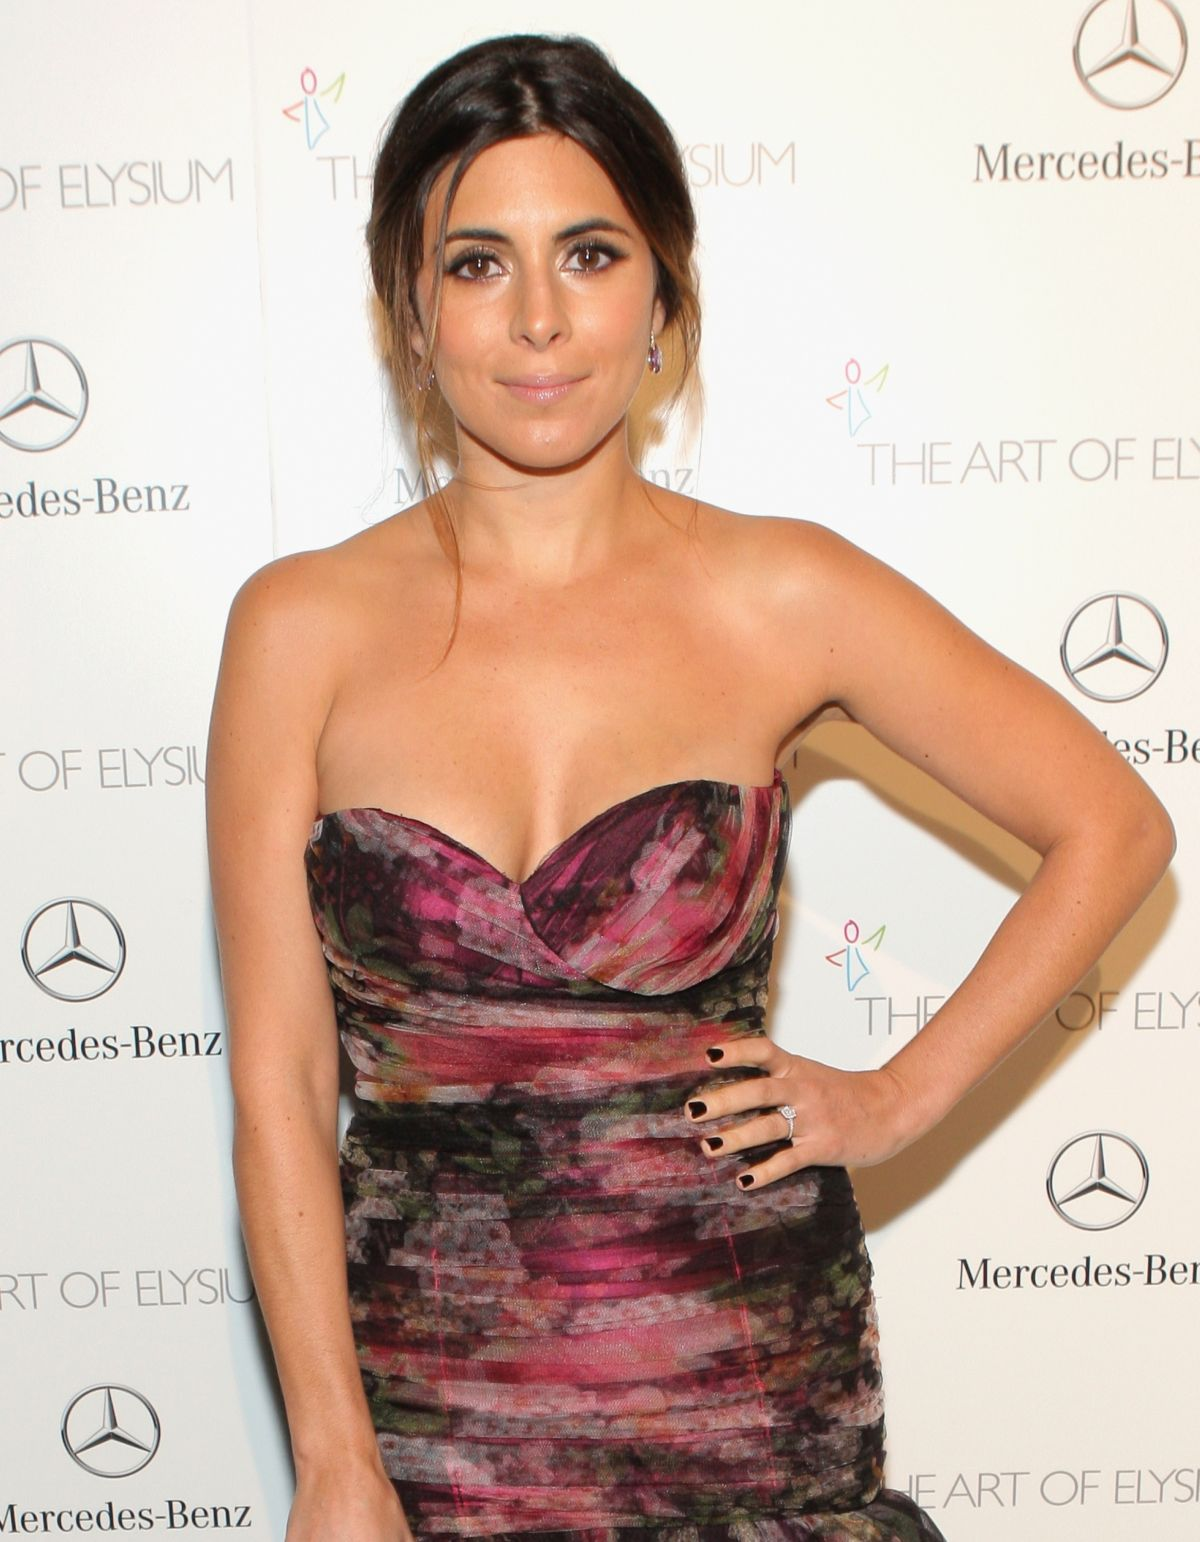 JAMIE-LYNN SIGLER at The Art of Elysium's 7th Annual Heaven Gala in Los Angeles